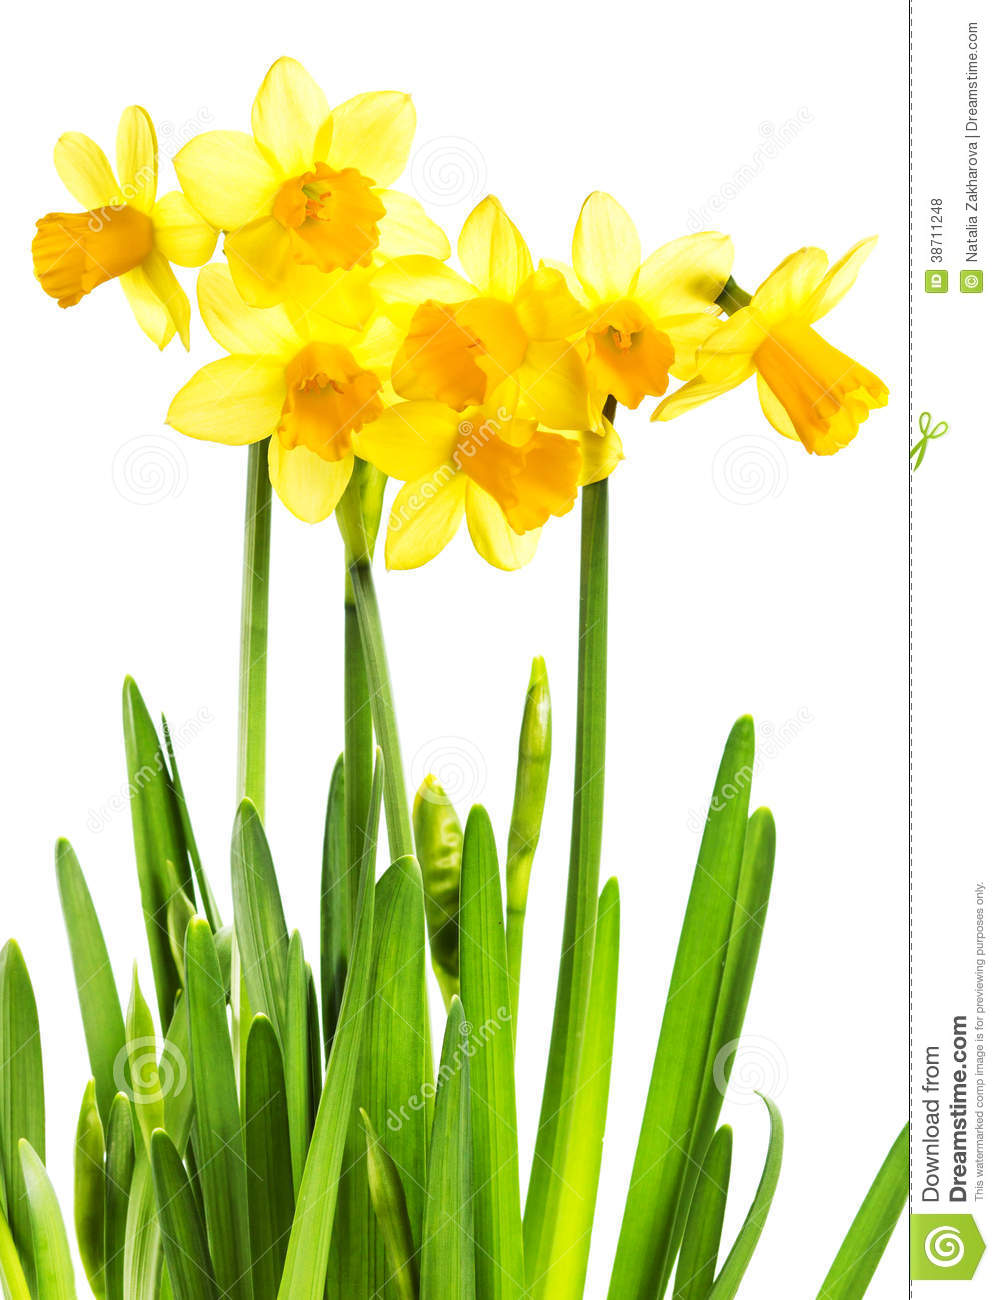 Spring Yellow Flowers Isolated On White Stock Photo Image Of Grass